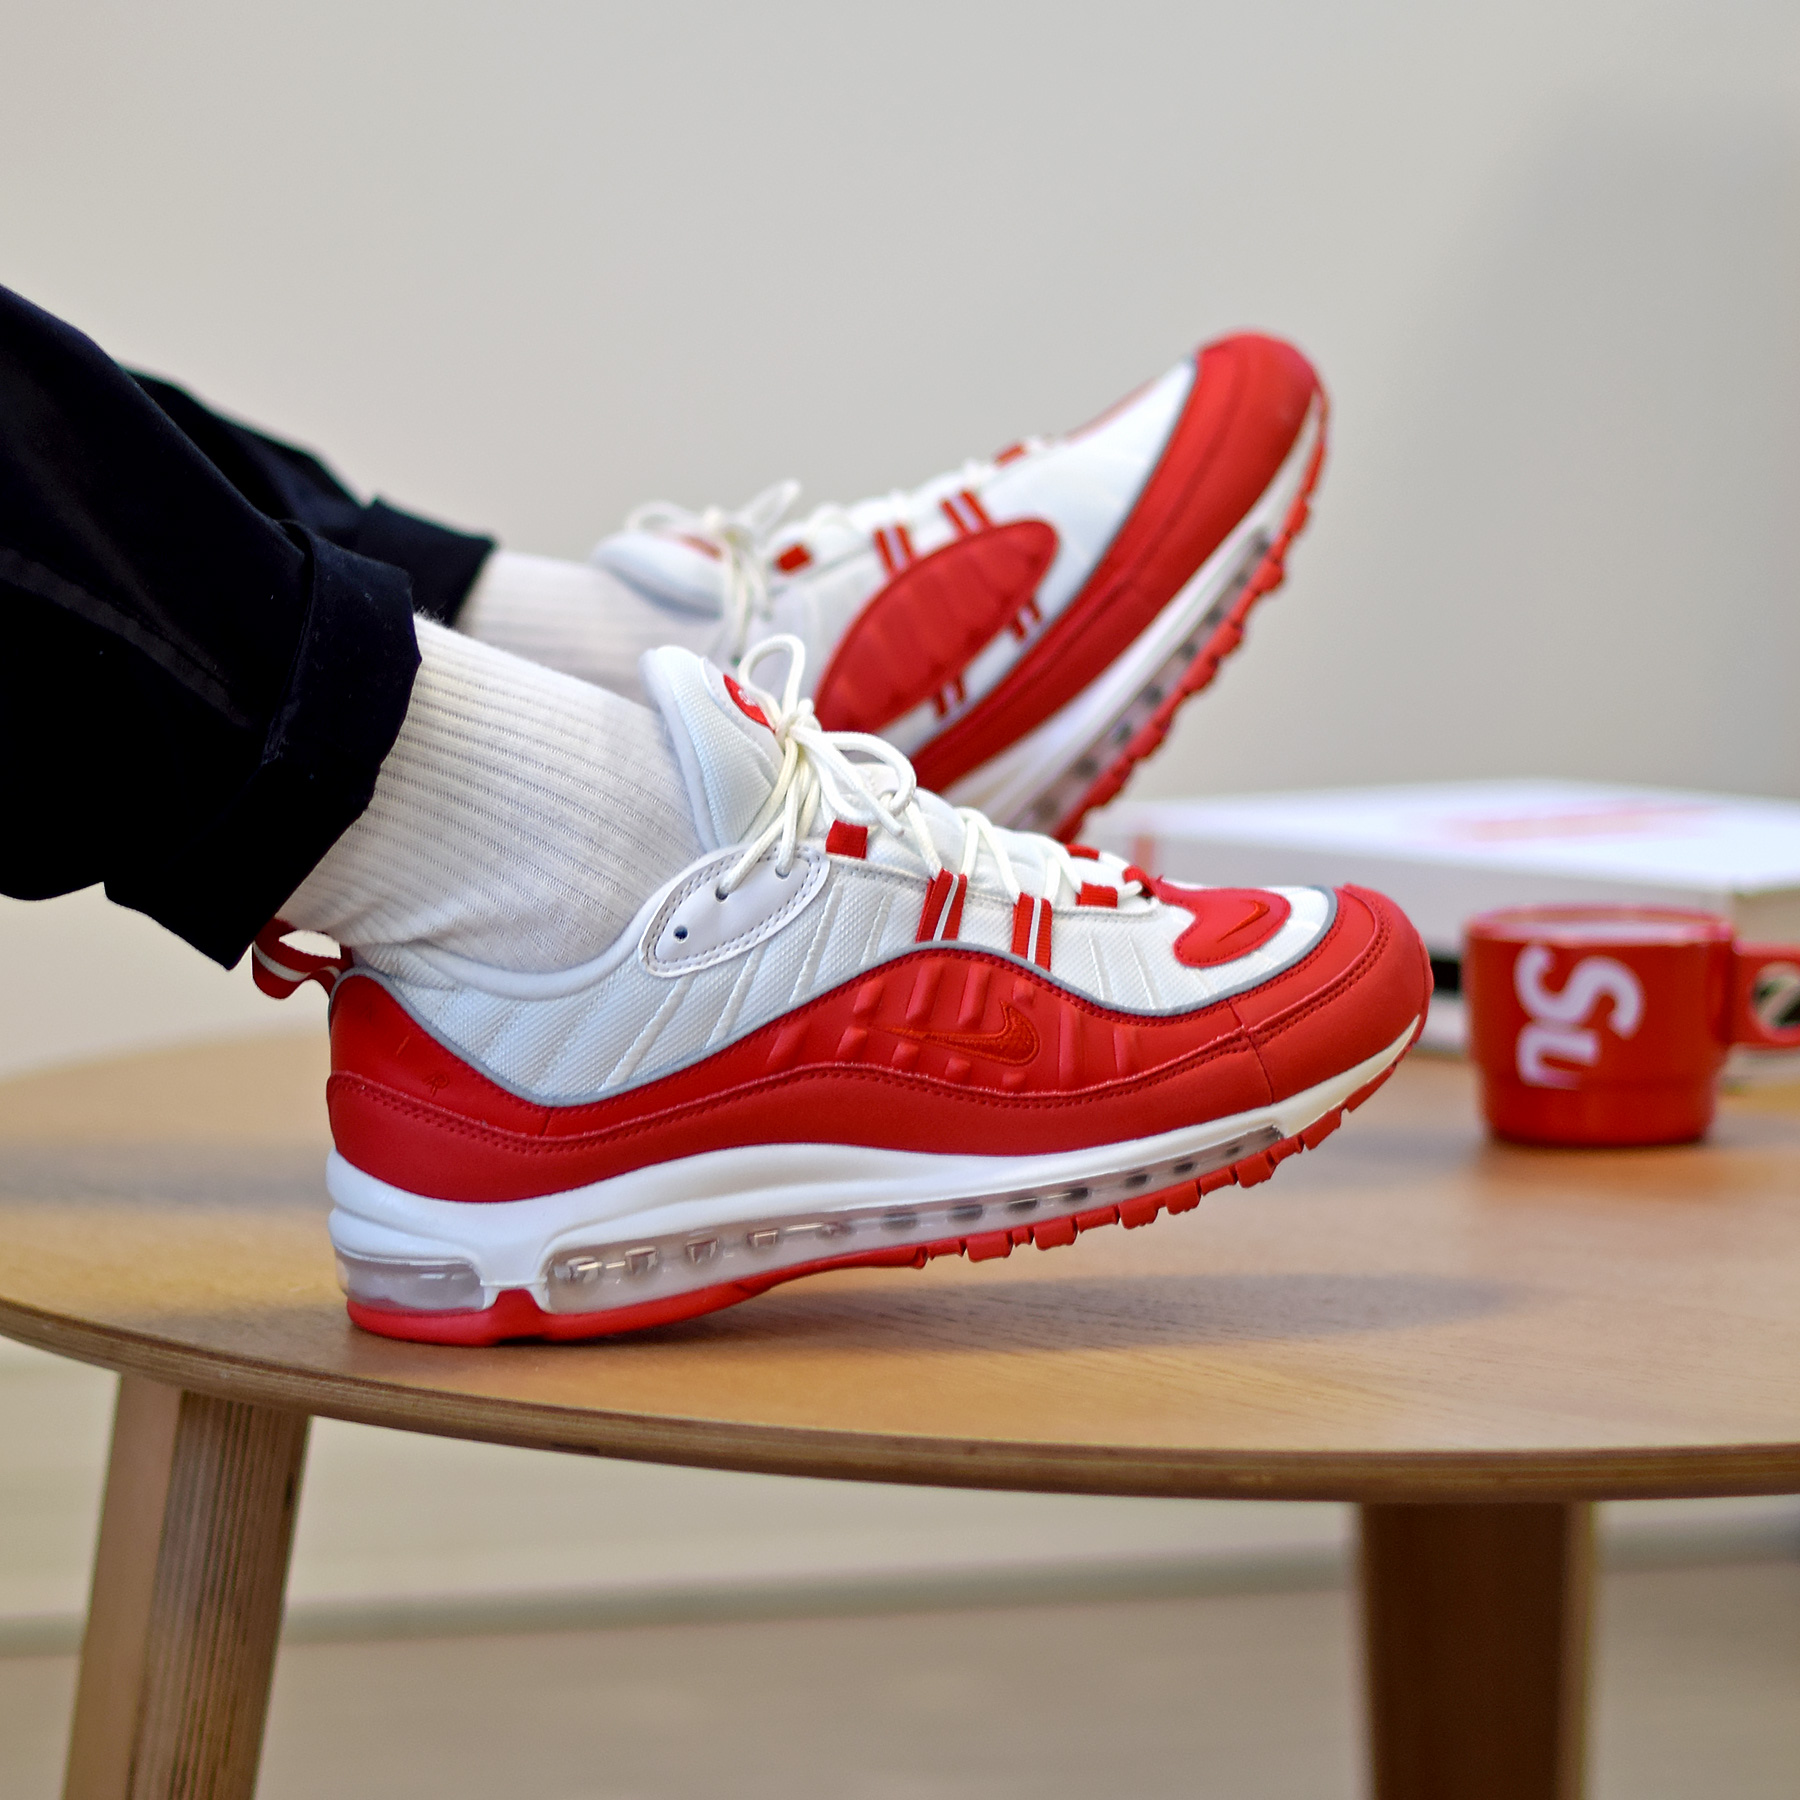 plus récent a7485 dd2bf Nike Air Max 98 White/University Red